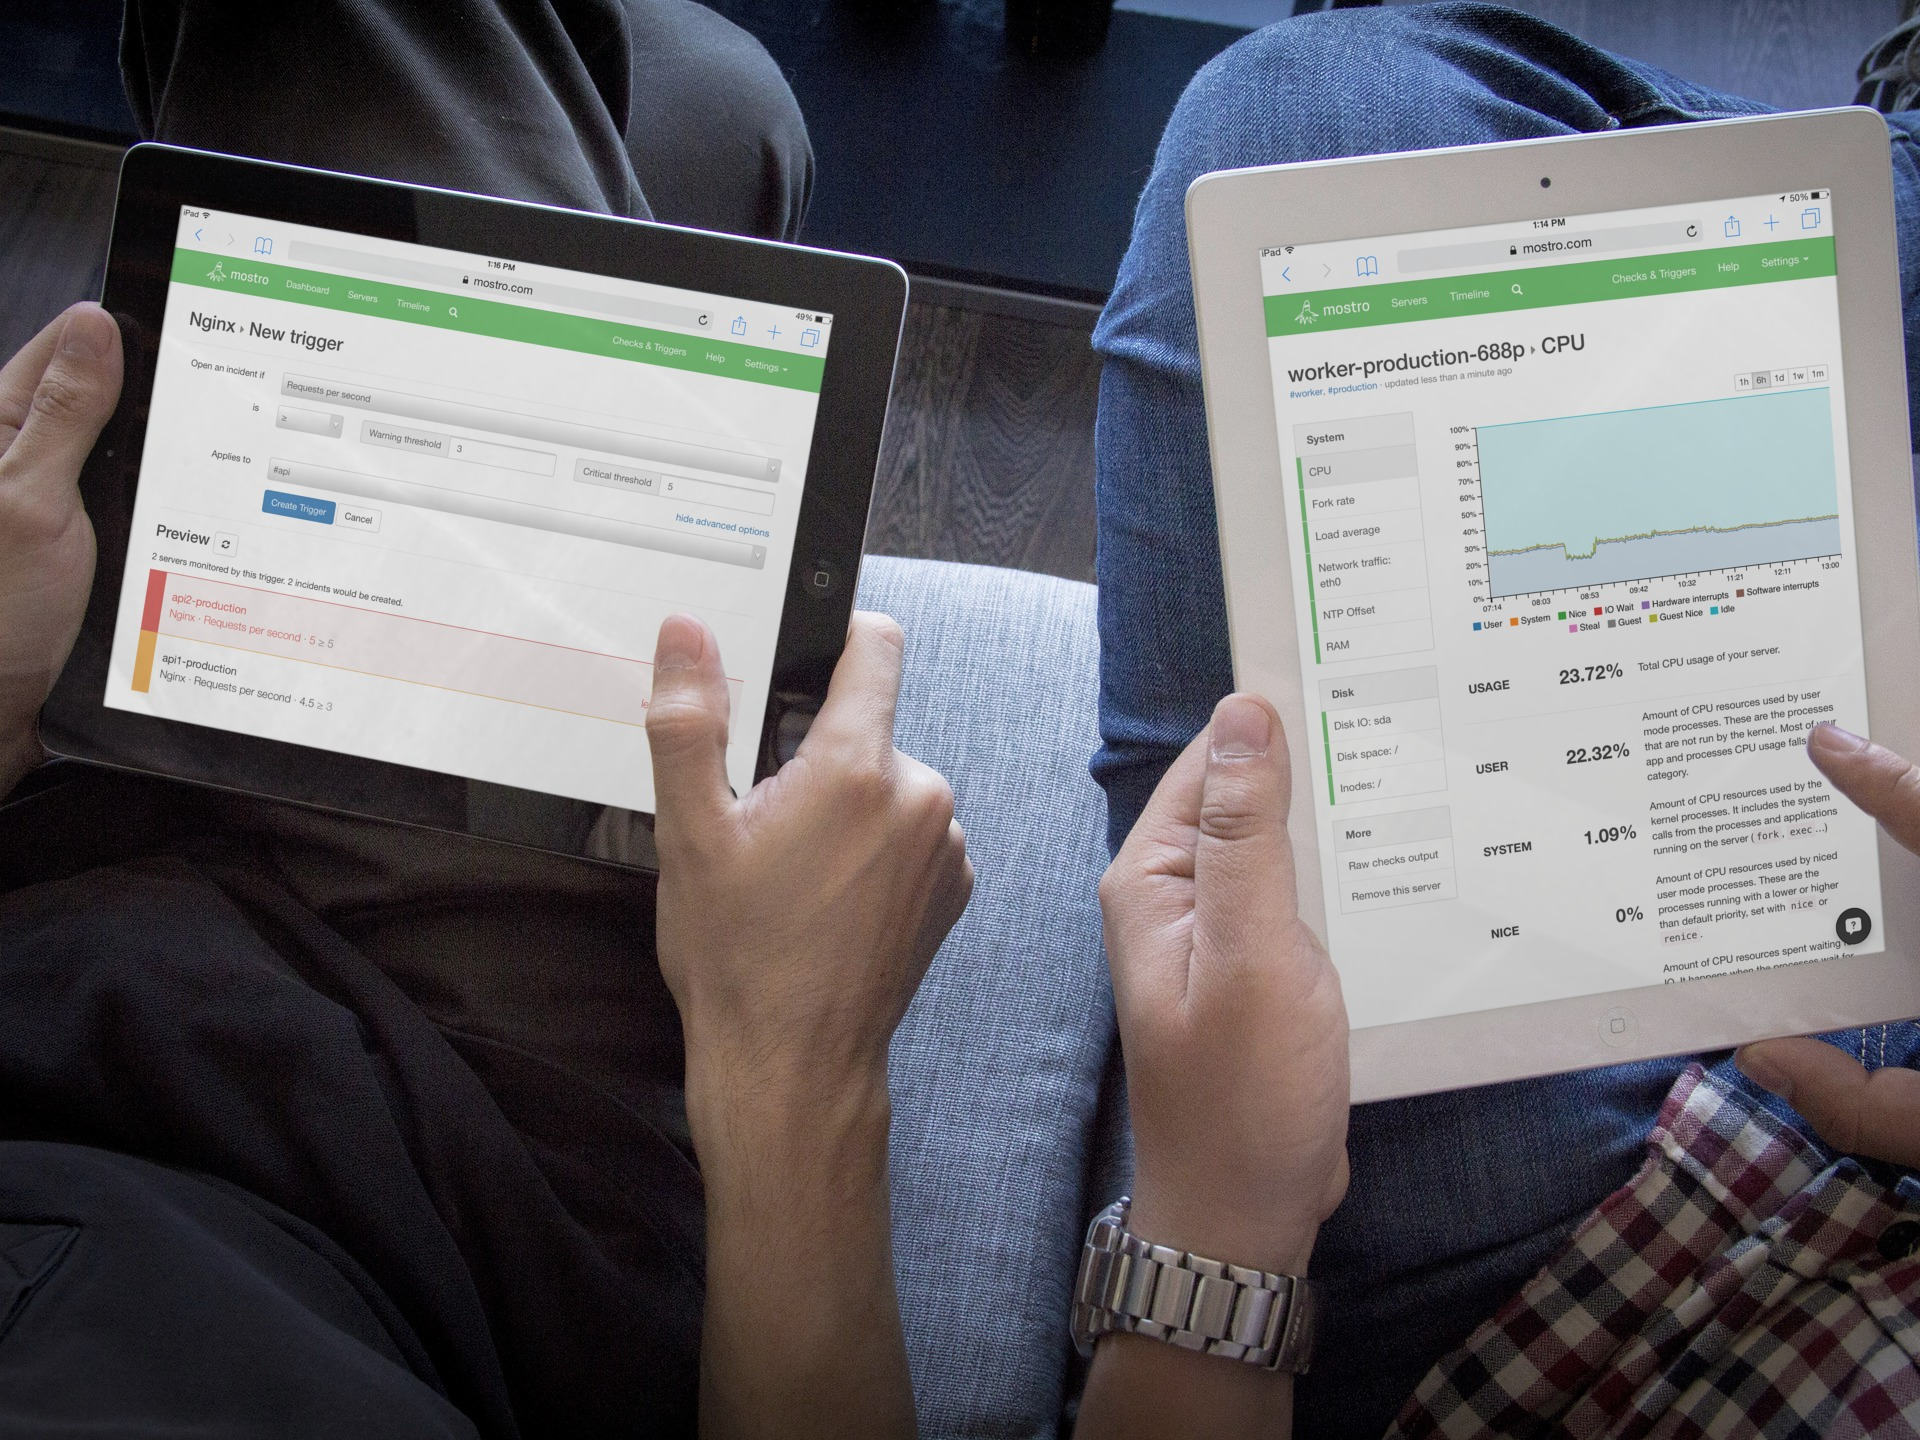 Top-down view of two pairs of hands, each holding and interacting with an iPad. The left iPad displays the configuration for a new alert trigger for the Nginx web server. The right iPad displays a server's CPU usage chart.